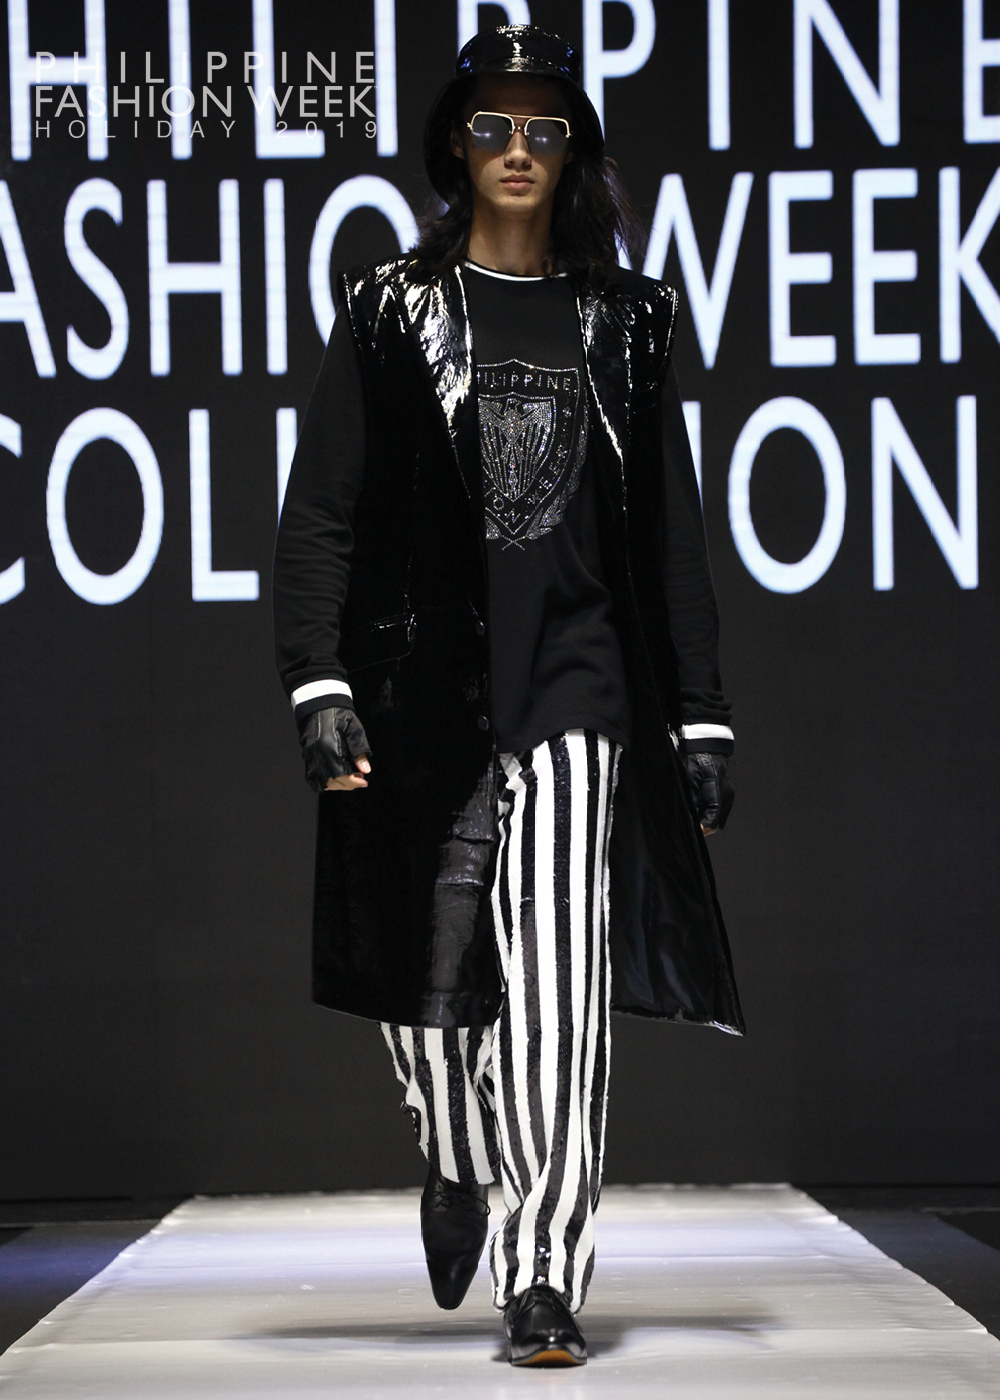 PhFW_collection show17.jpg